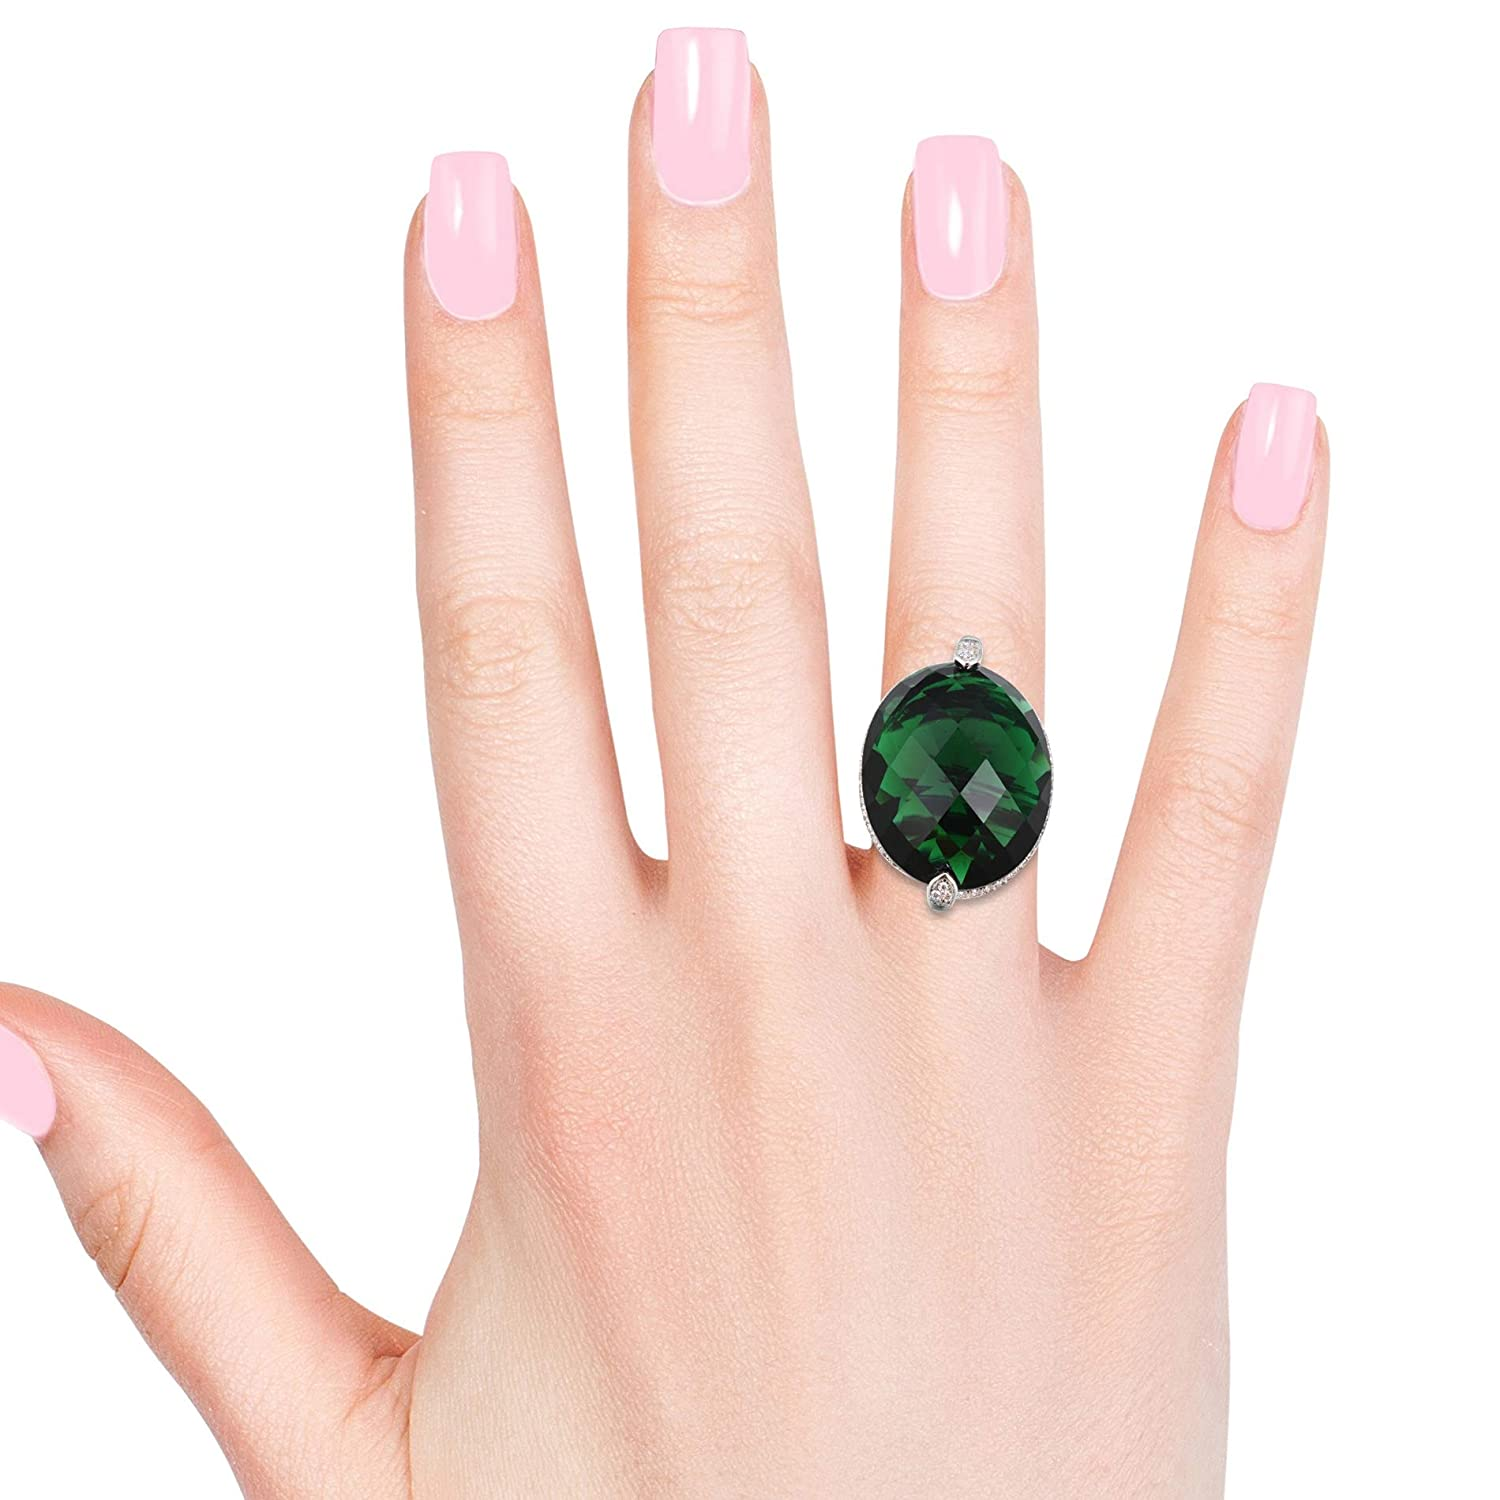 Shop LC Delivering Joy Statement Ring Green Glass White Cubic Zirconia CZ Jewelry for Women Size 8